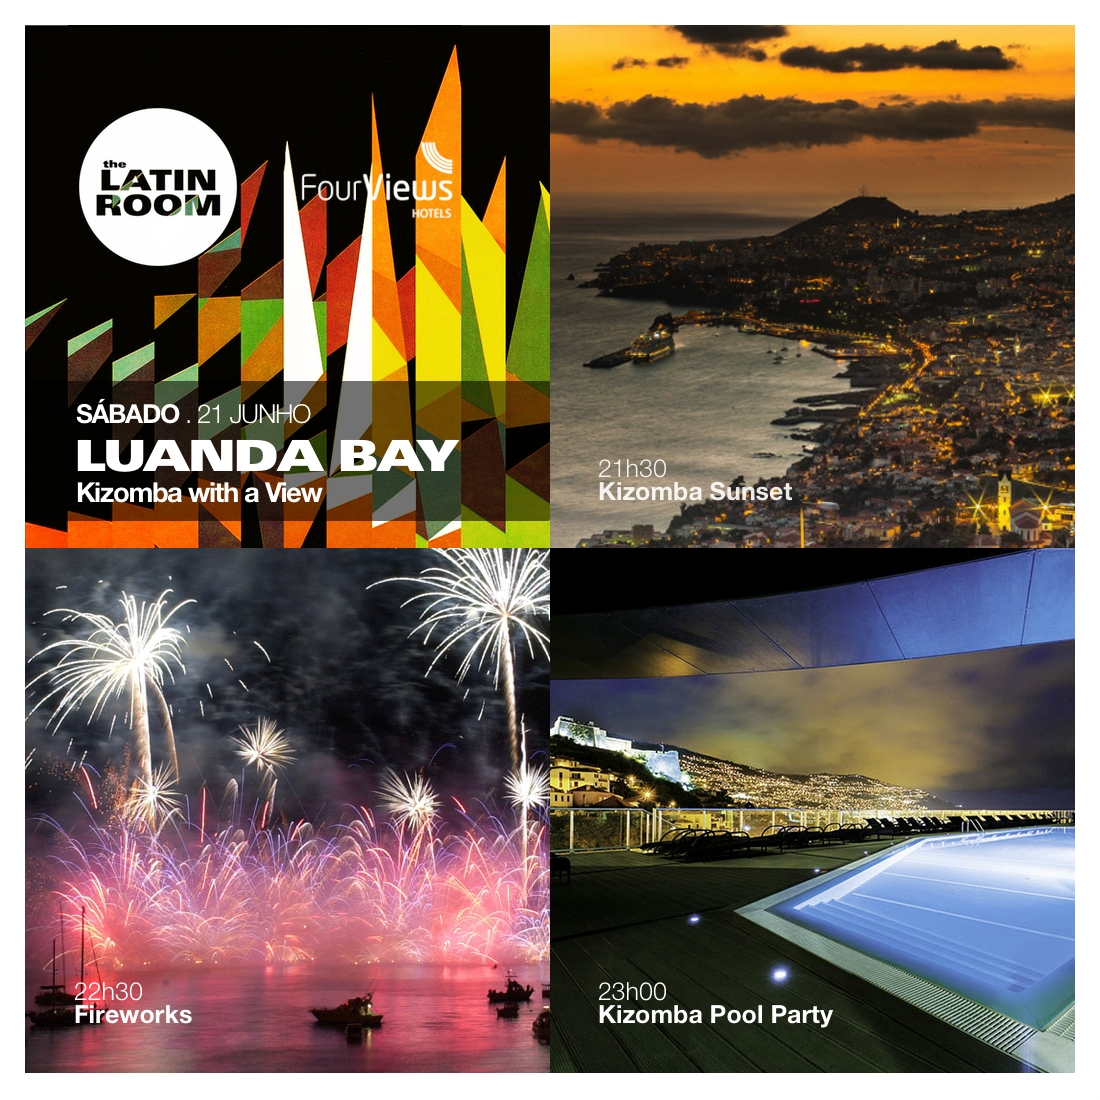 LUANDA BAY KIZOMBA PARTY Programa - Madeira, Funchal - Latin Room